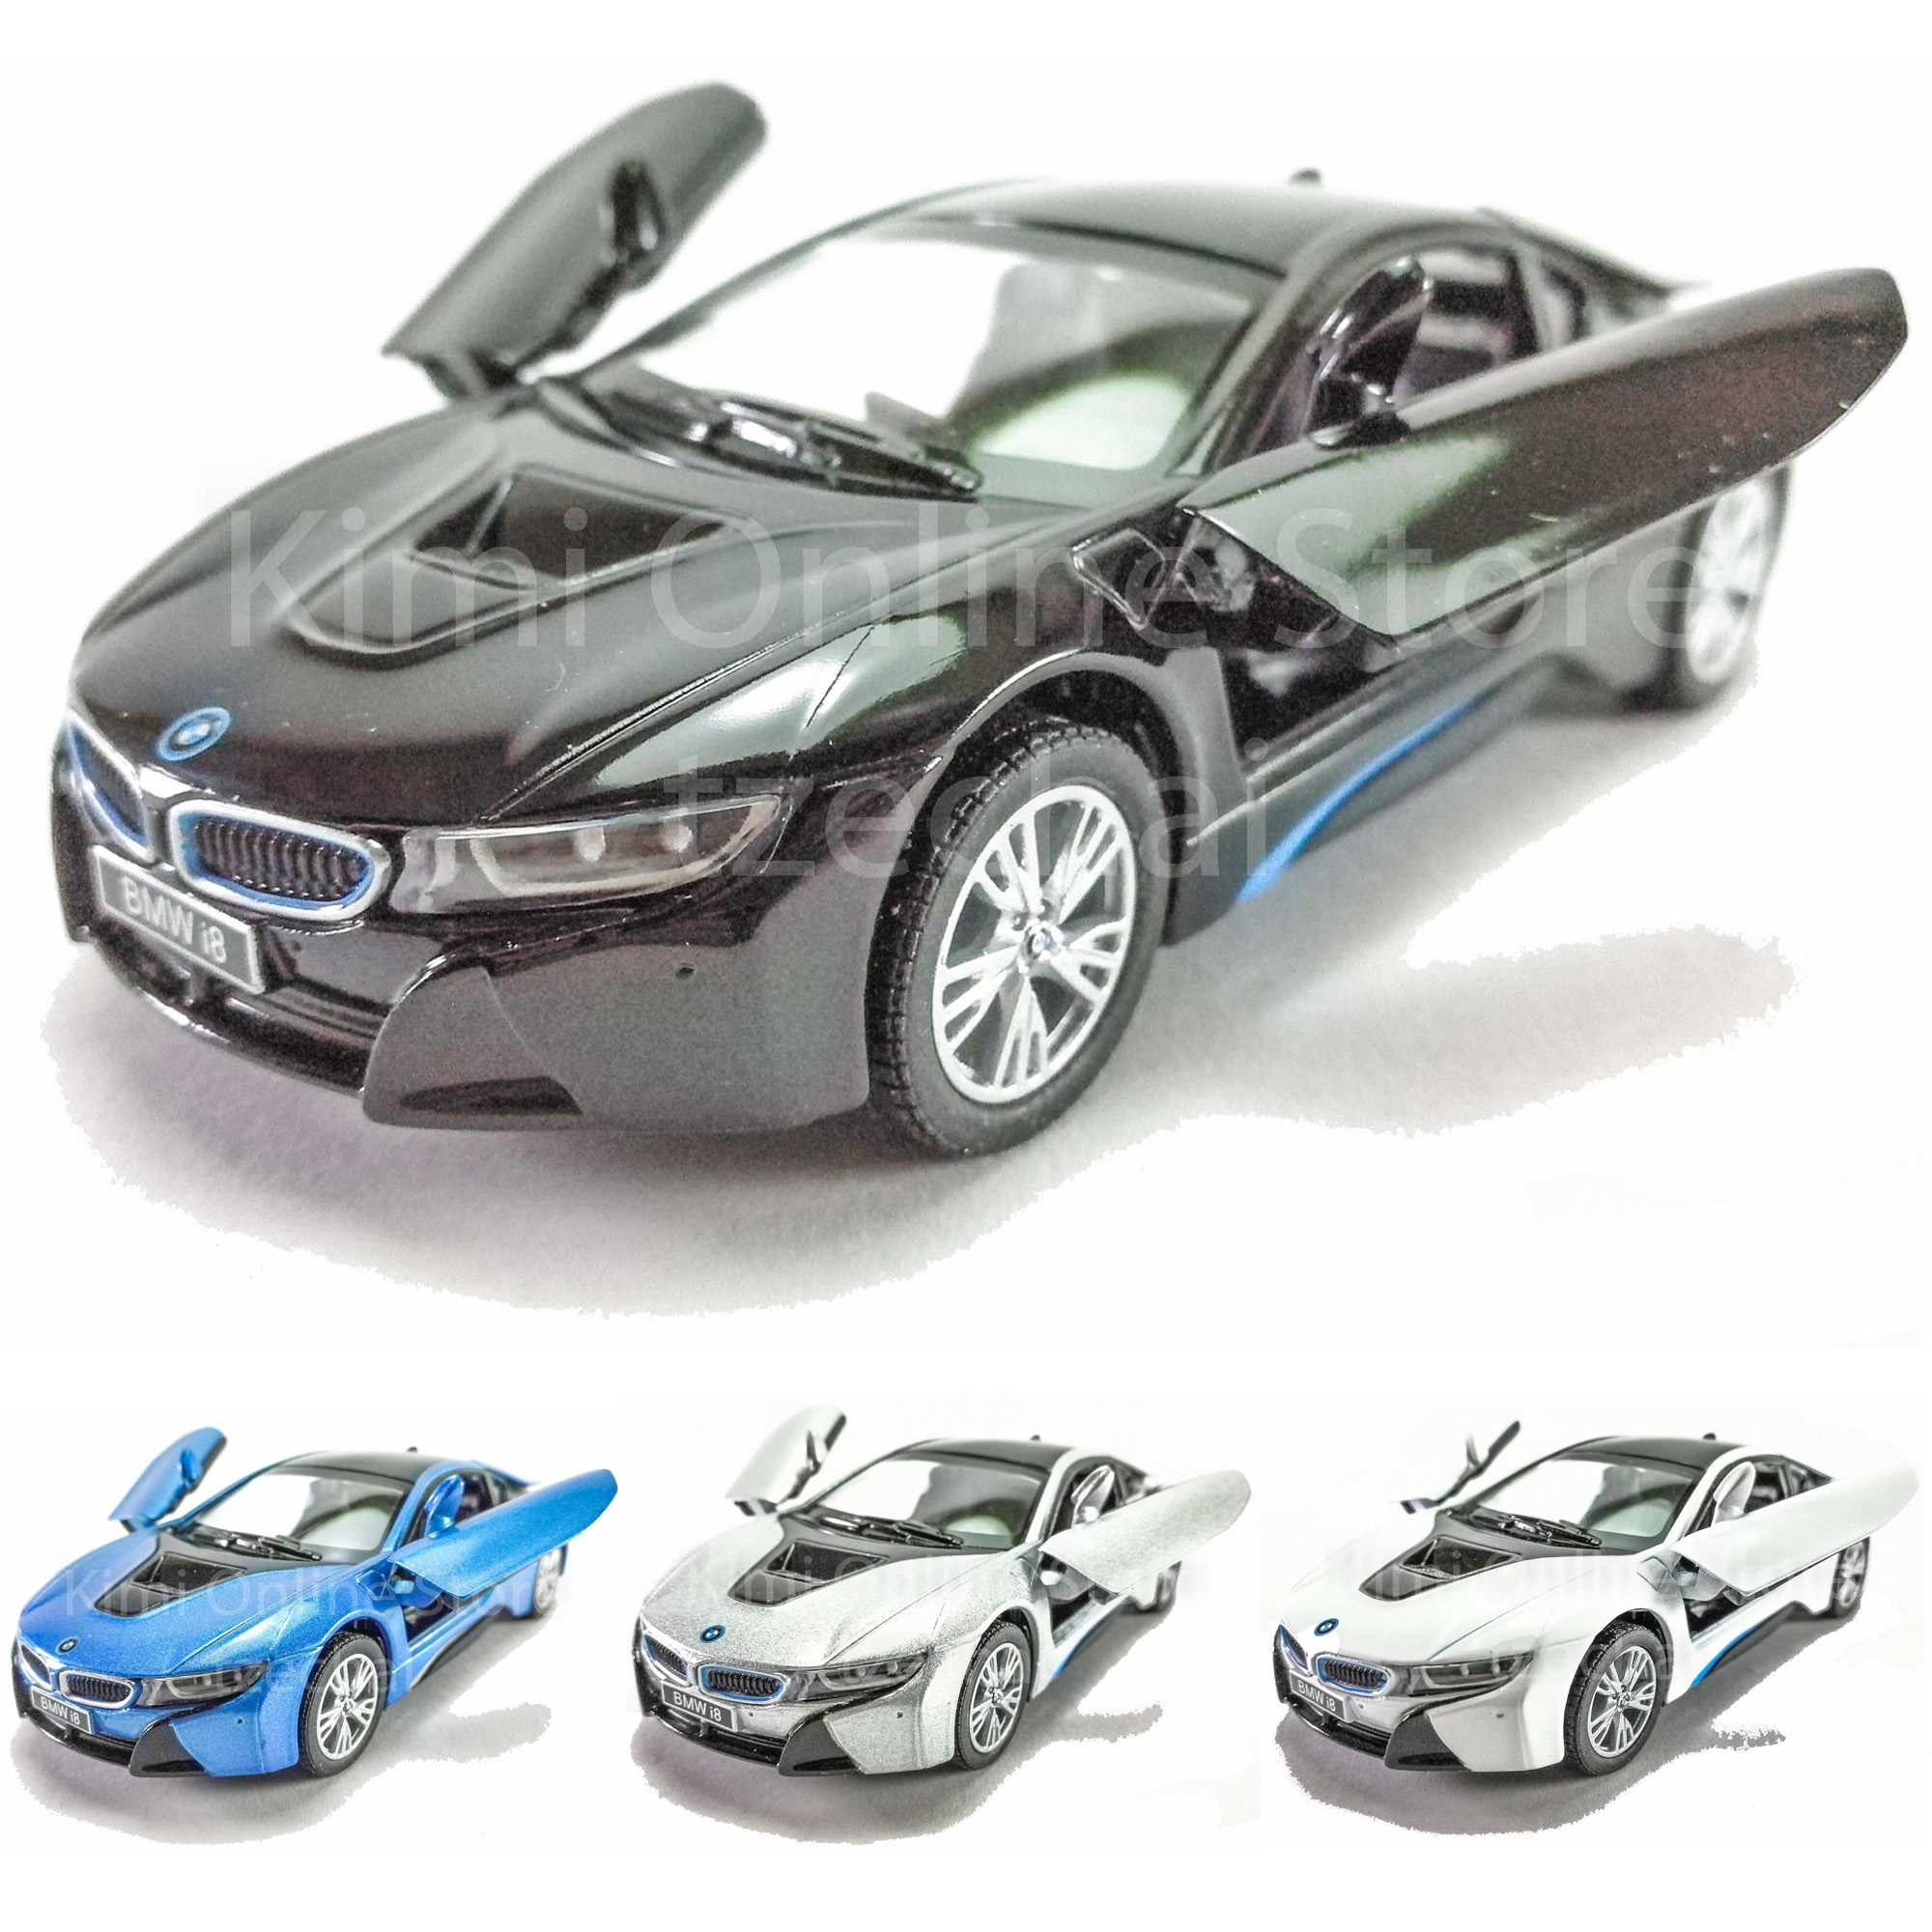 Kinsmart Diecast Car 136 BMW I8 Blue Silver White Black Model Friction Toys W